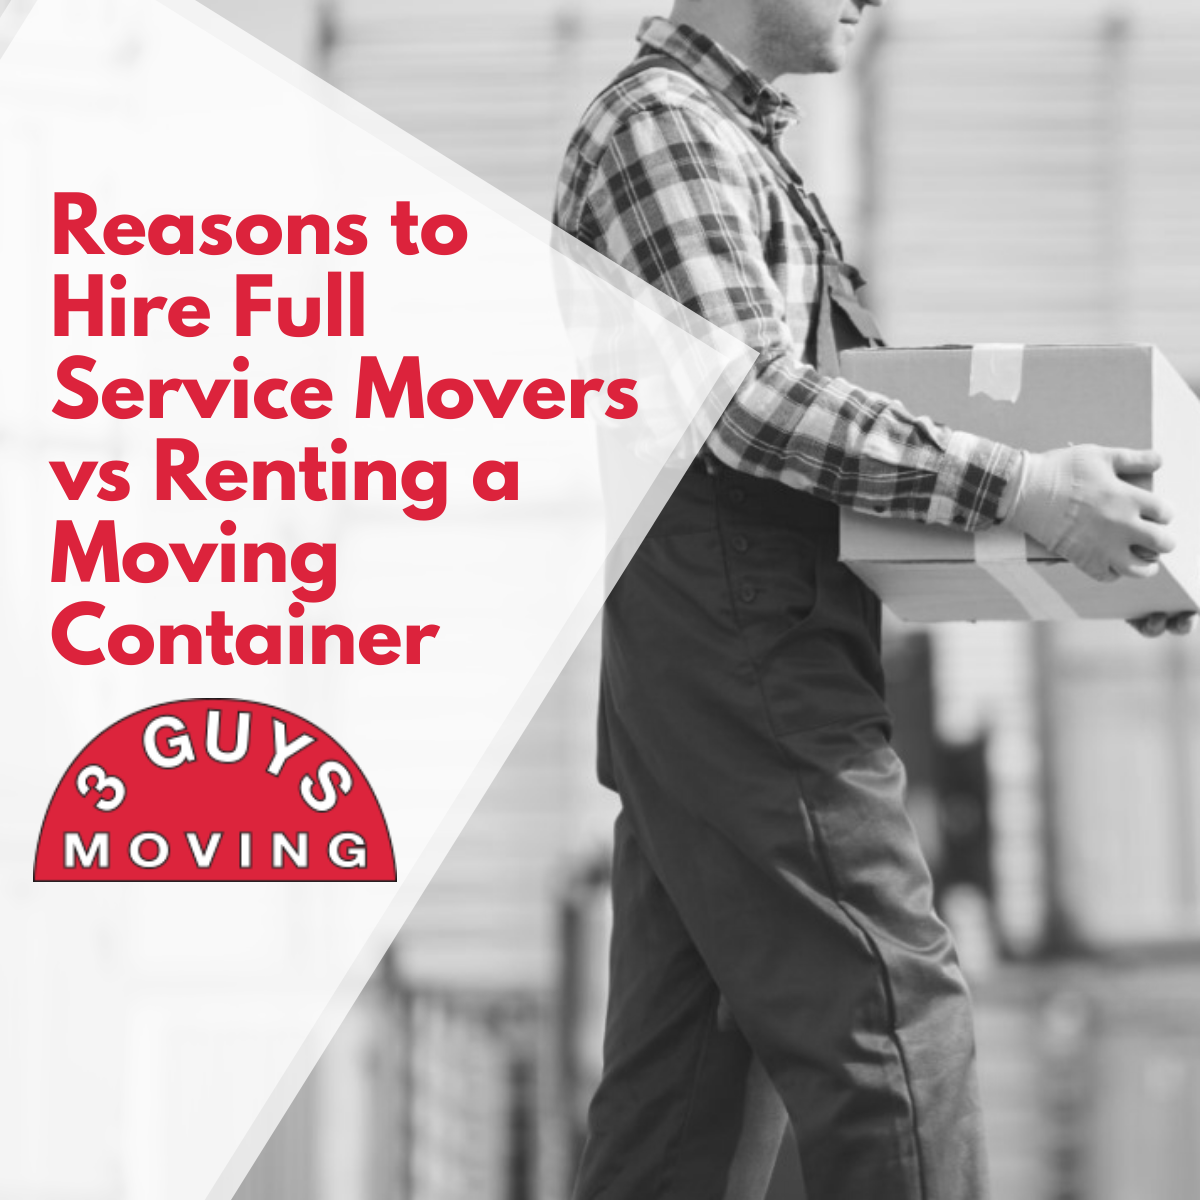 Reasons to Hire Full Service Movers - Reasons to Hire Full Service Movers vs Renting a Moving Container